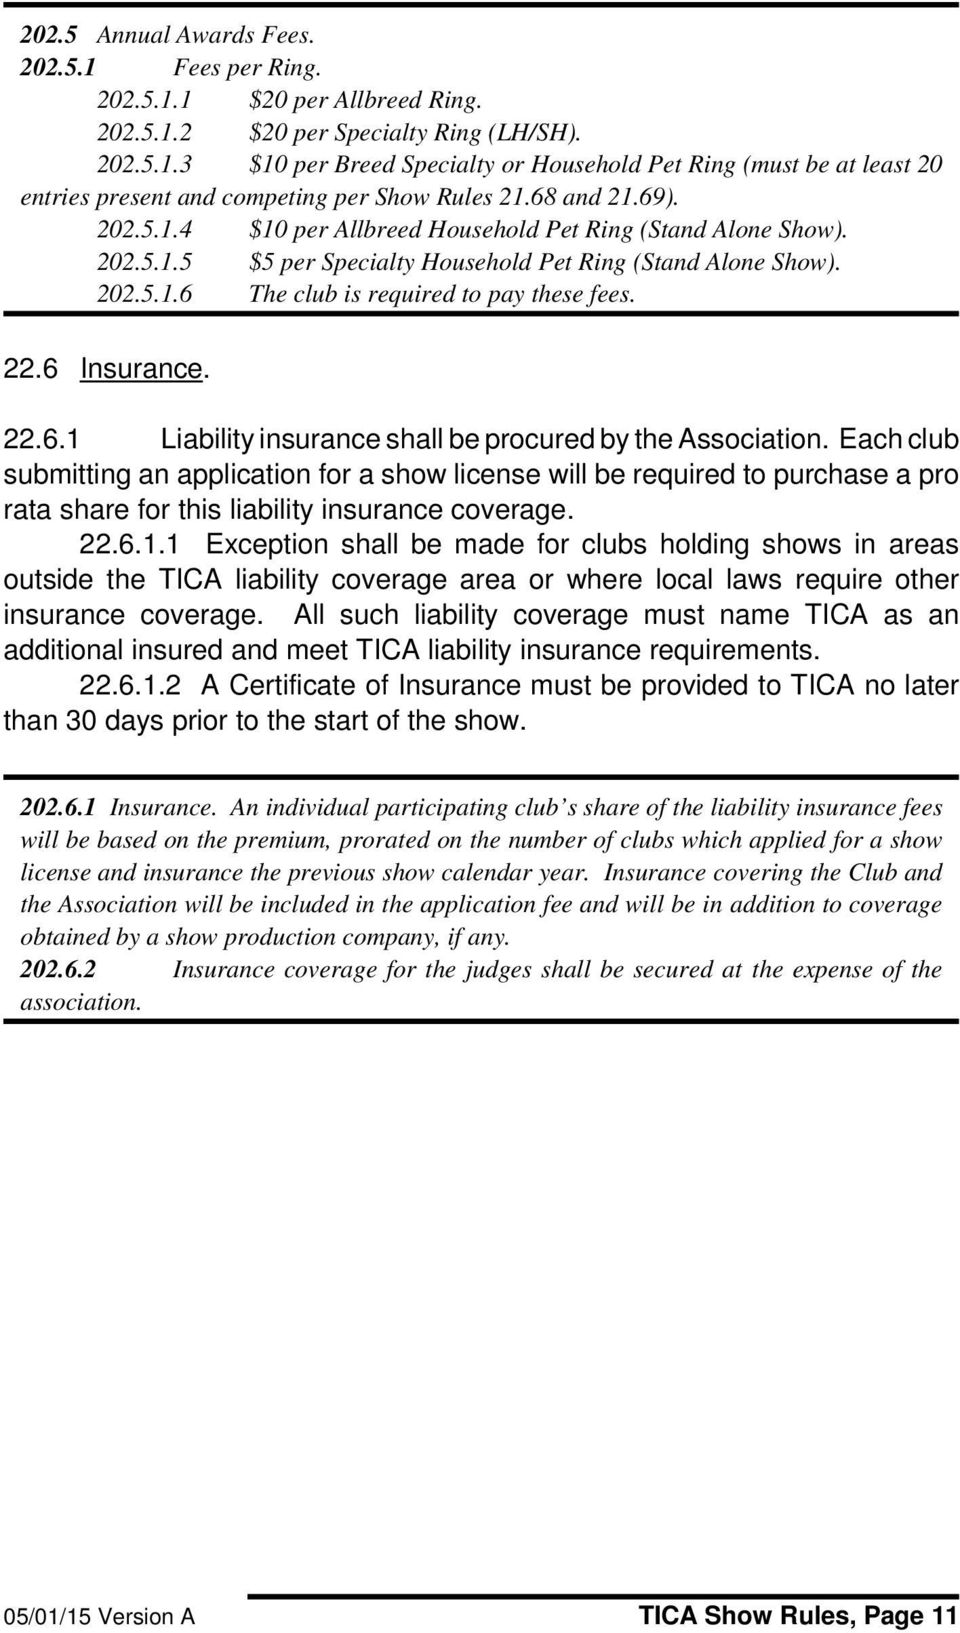 6 Insurance. 22.6.1 Liability insurance shall be procured by the Association.